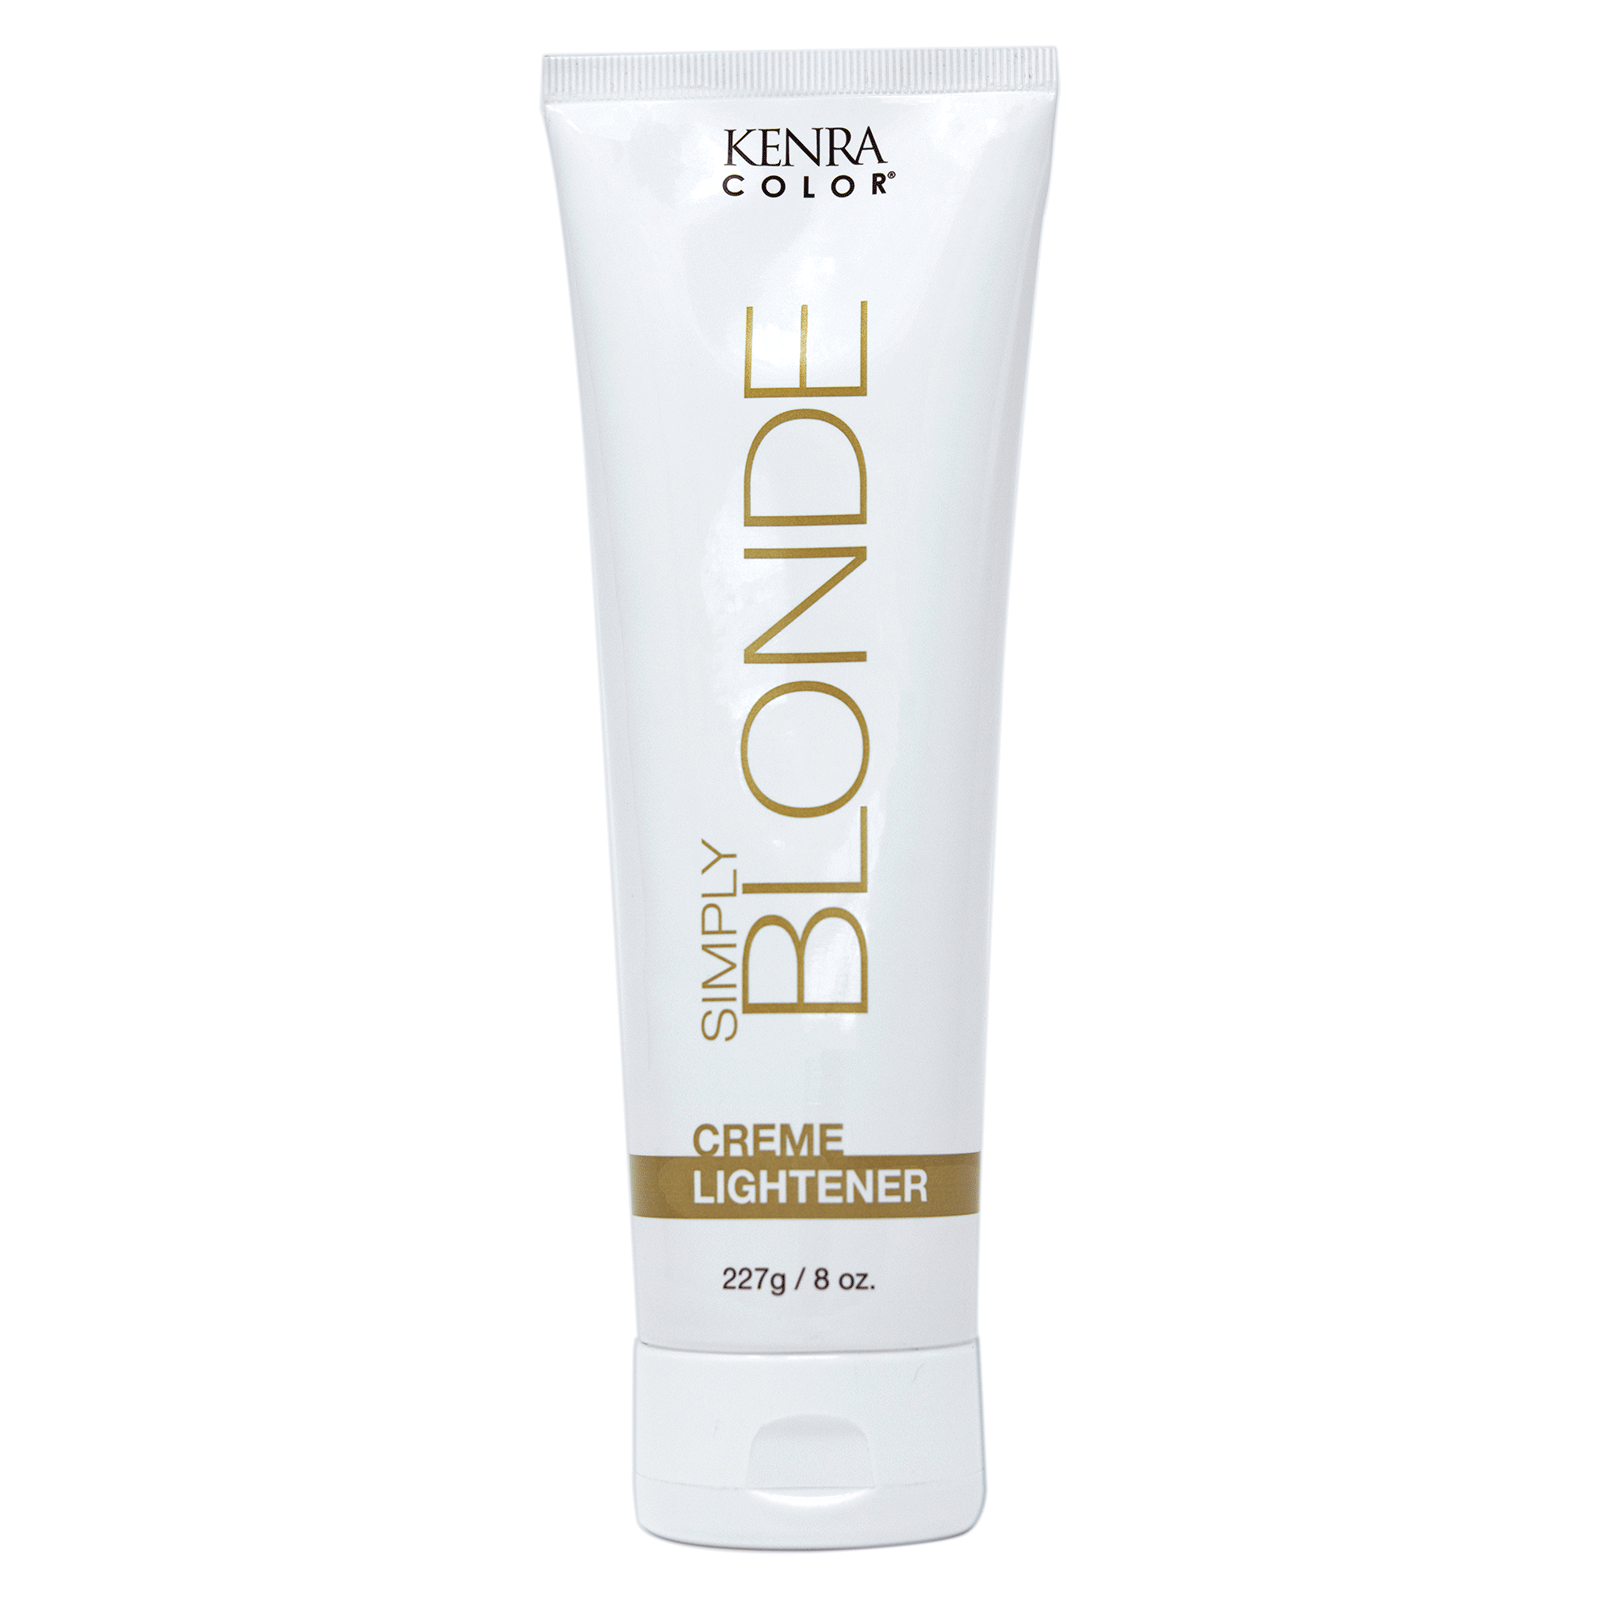 Simply Blonde Creme Lightener